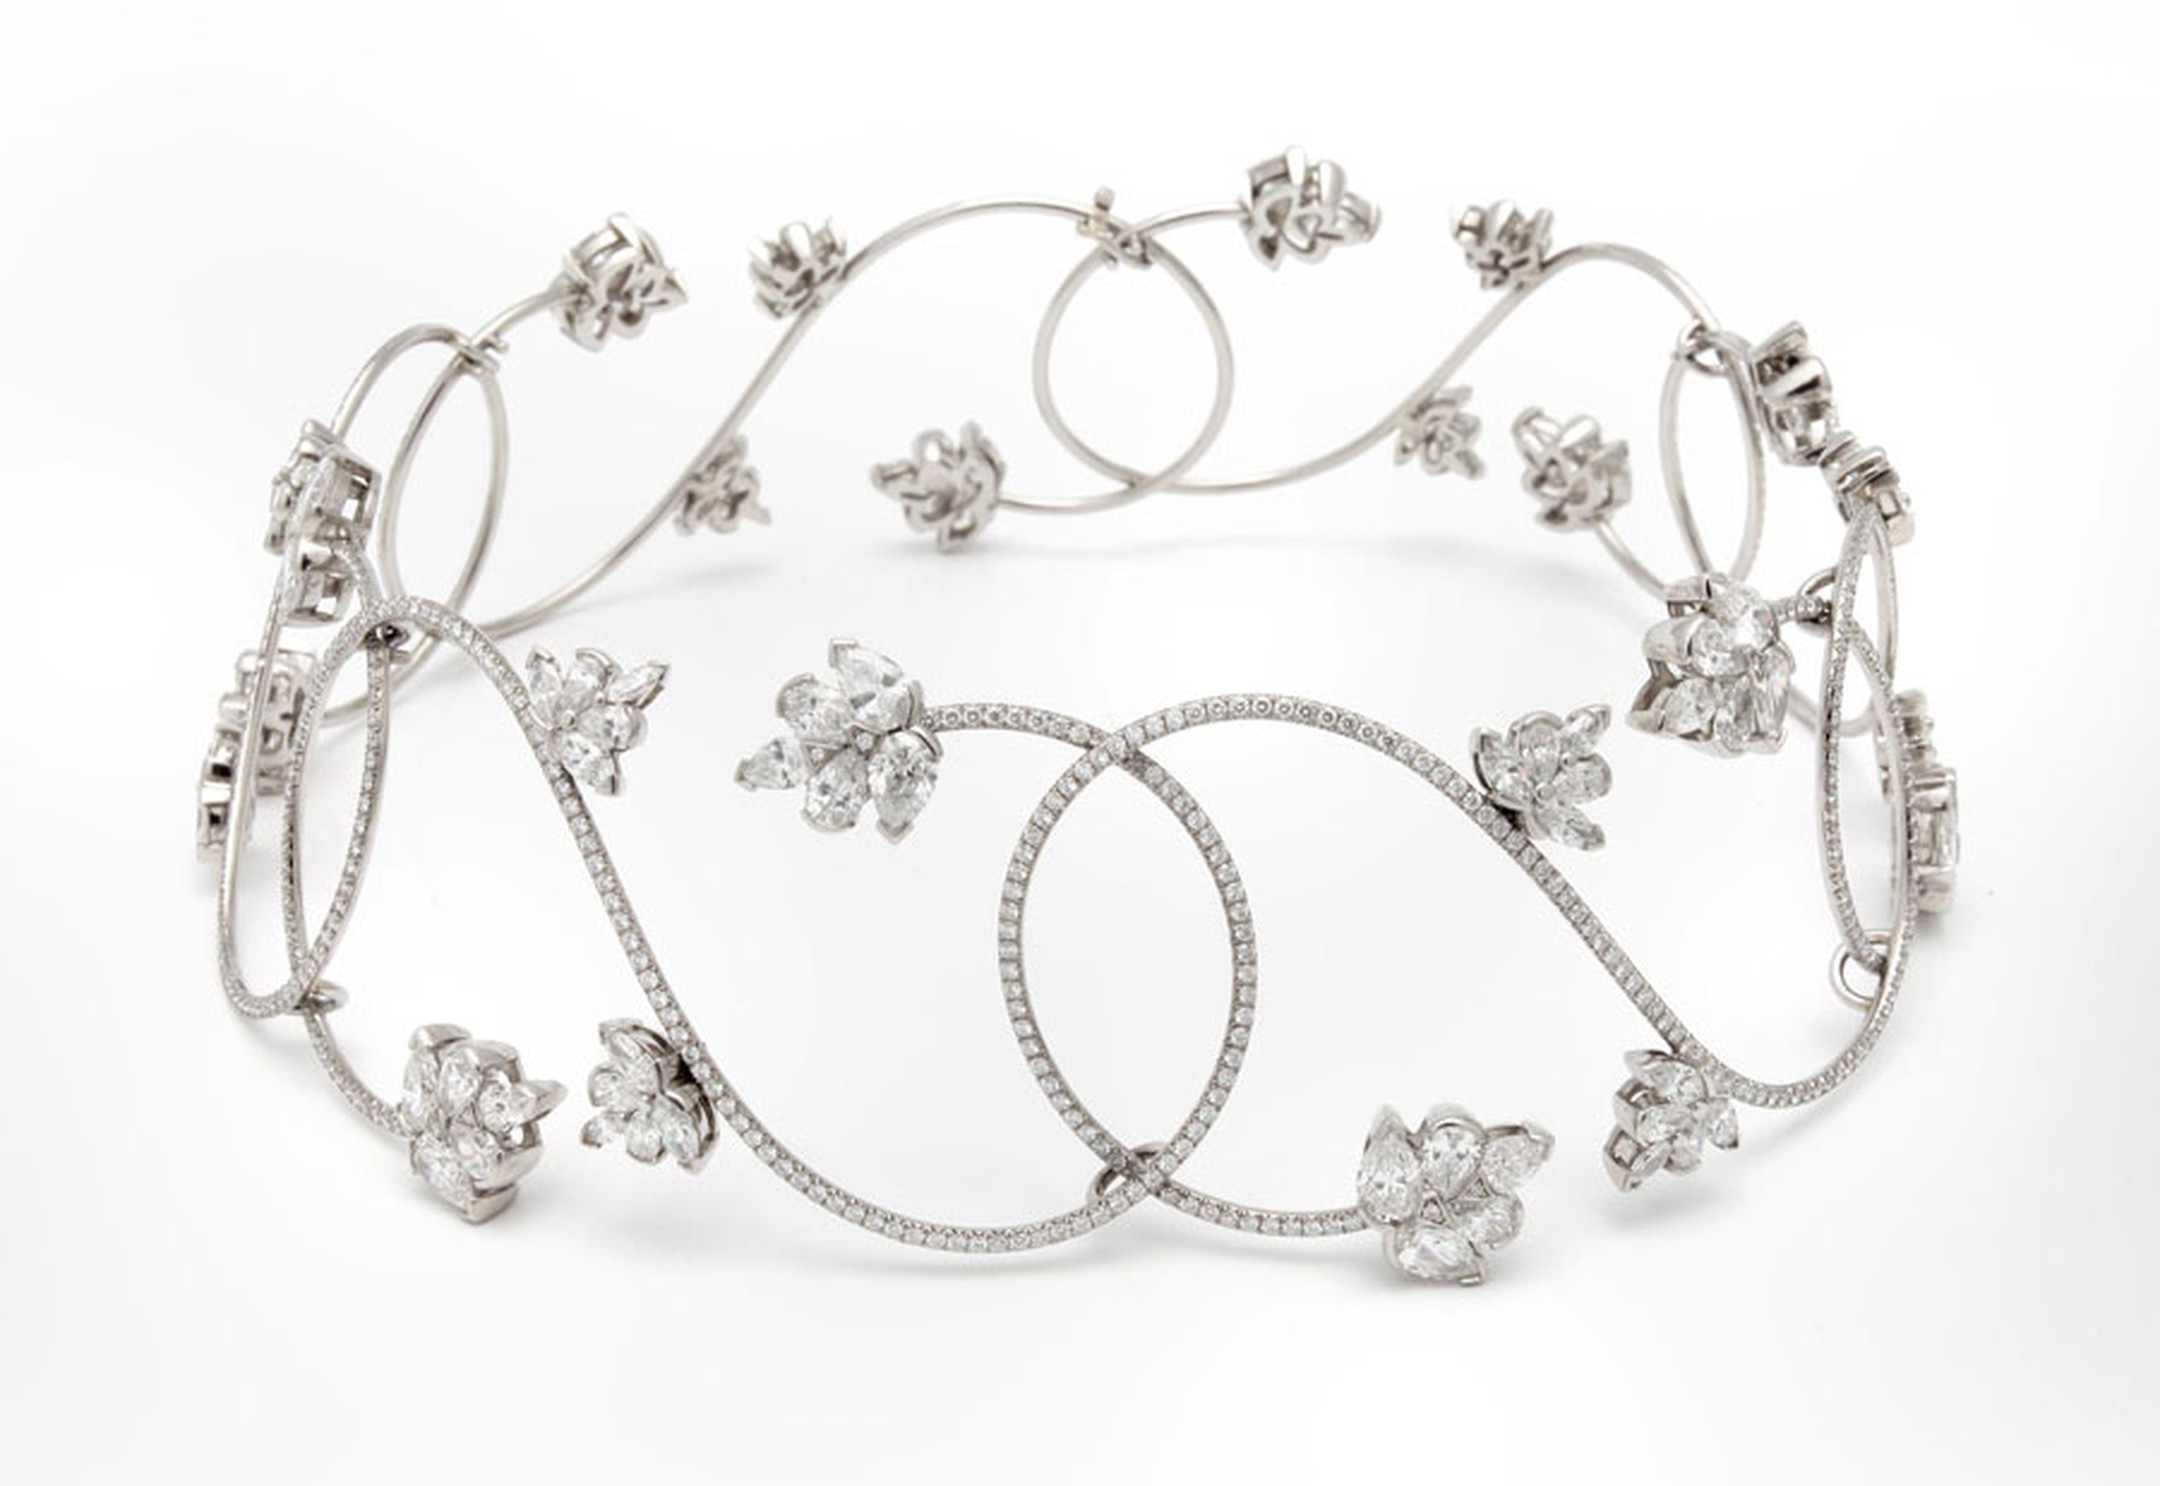 Argyle-A-sensuous-choker-set-in-platinum--with-a-delicate-flower-design-enhanced-by-25tc-tw-diamonds.jpg